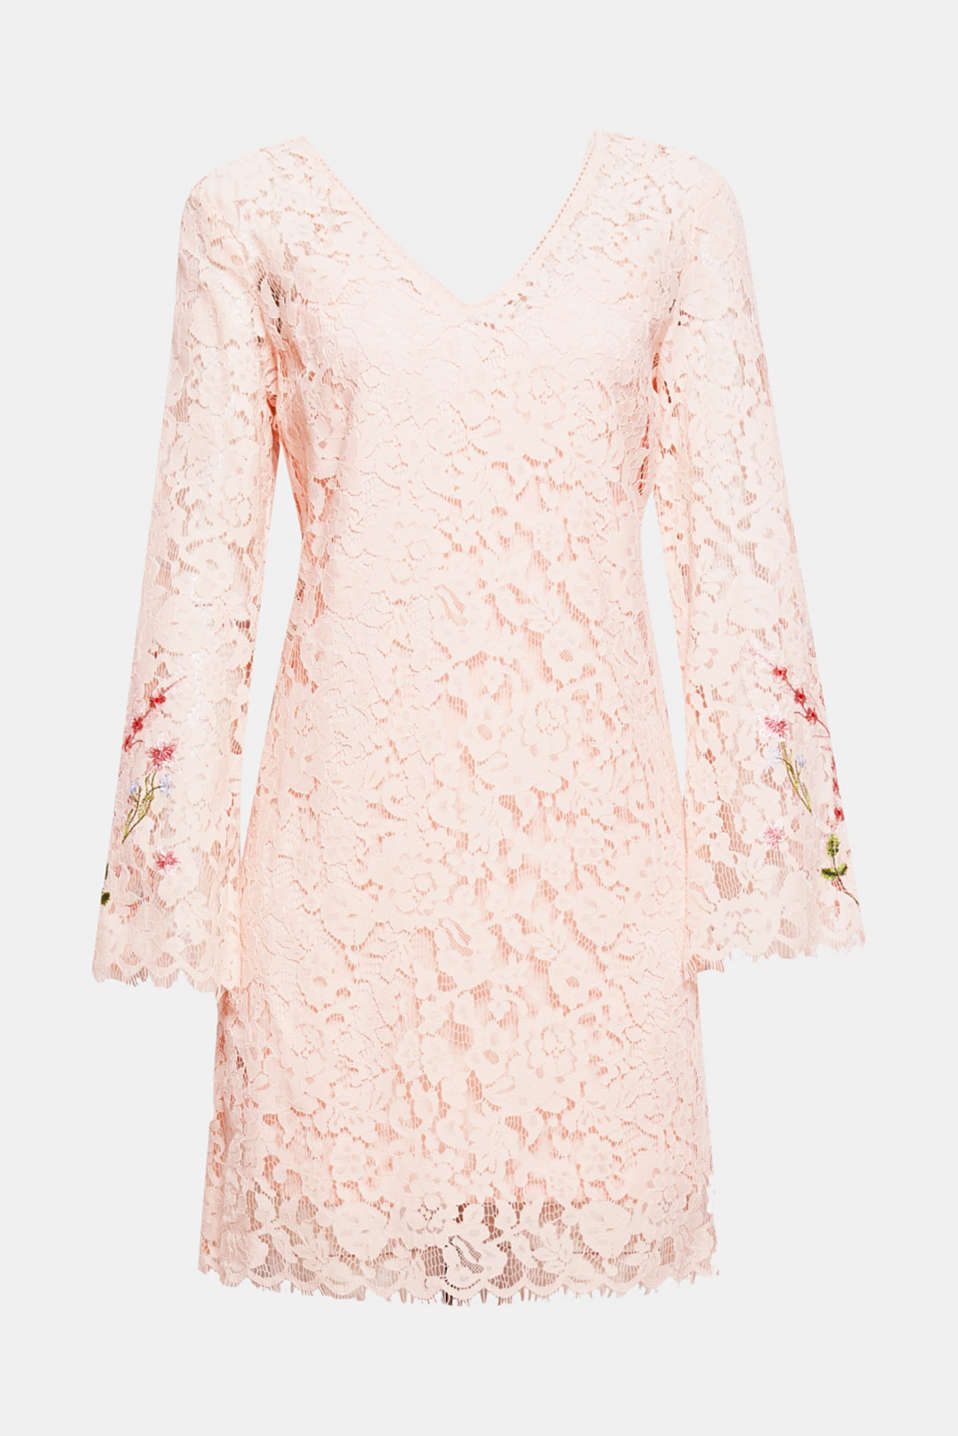 Pretty lace romantic! Floral lace and floral embroidery give a feminine touch to this dress.